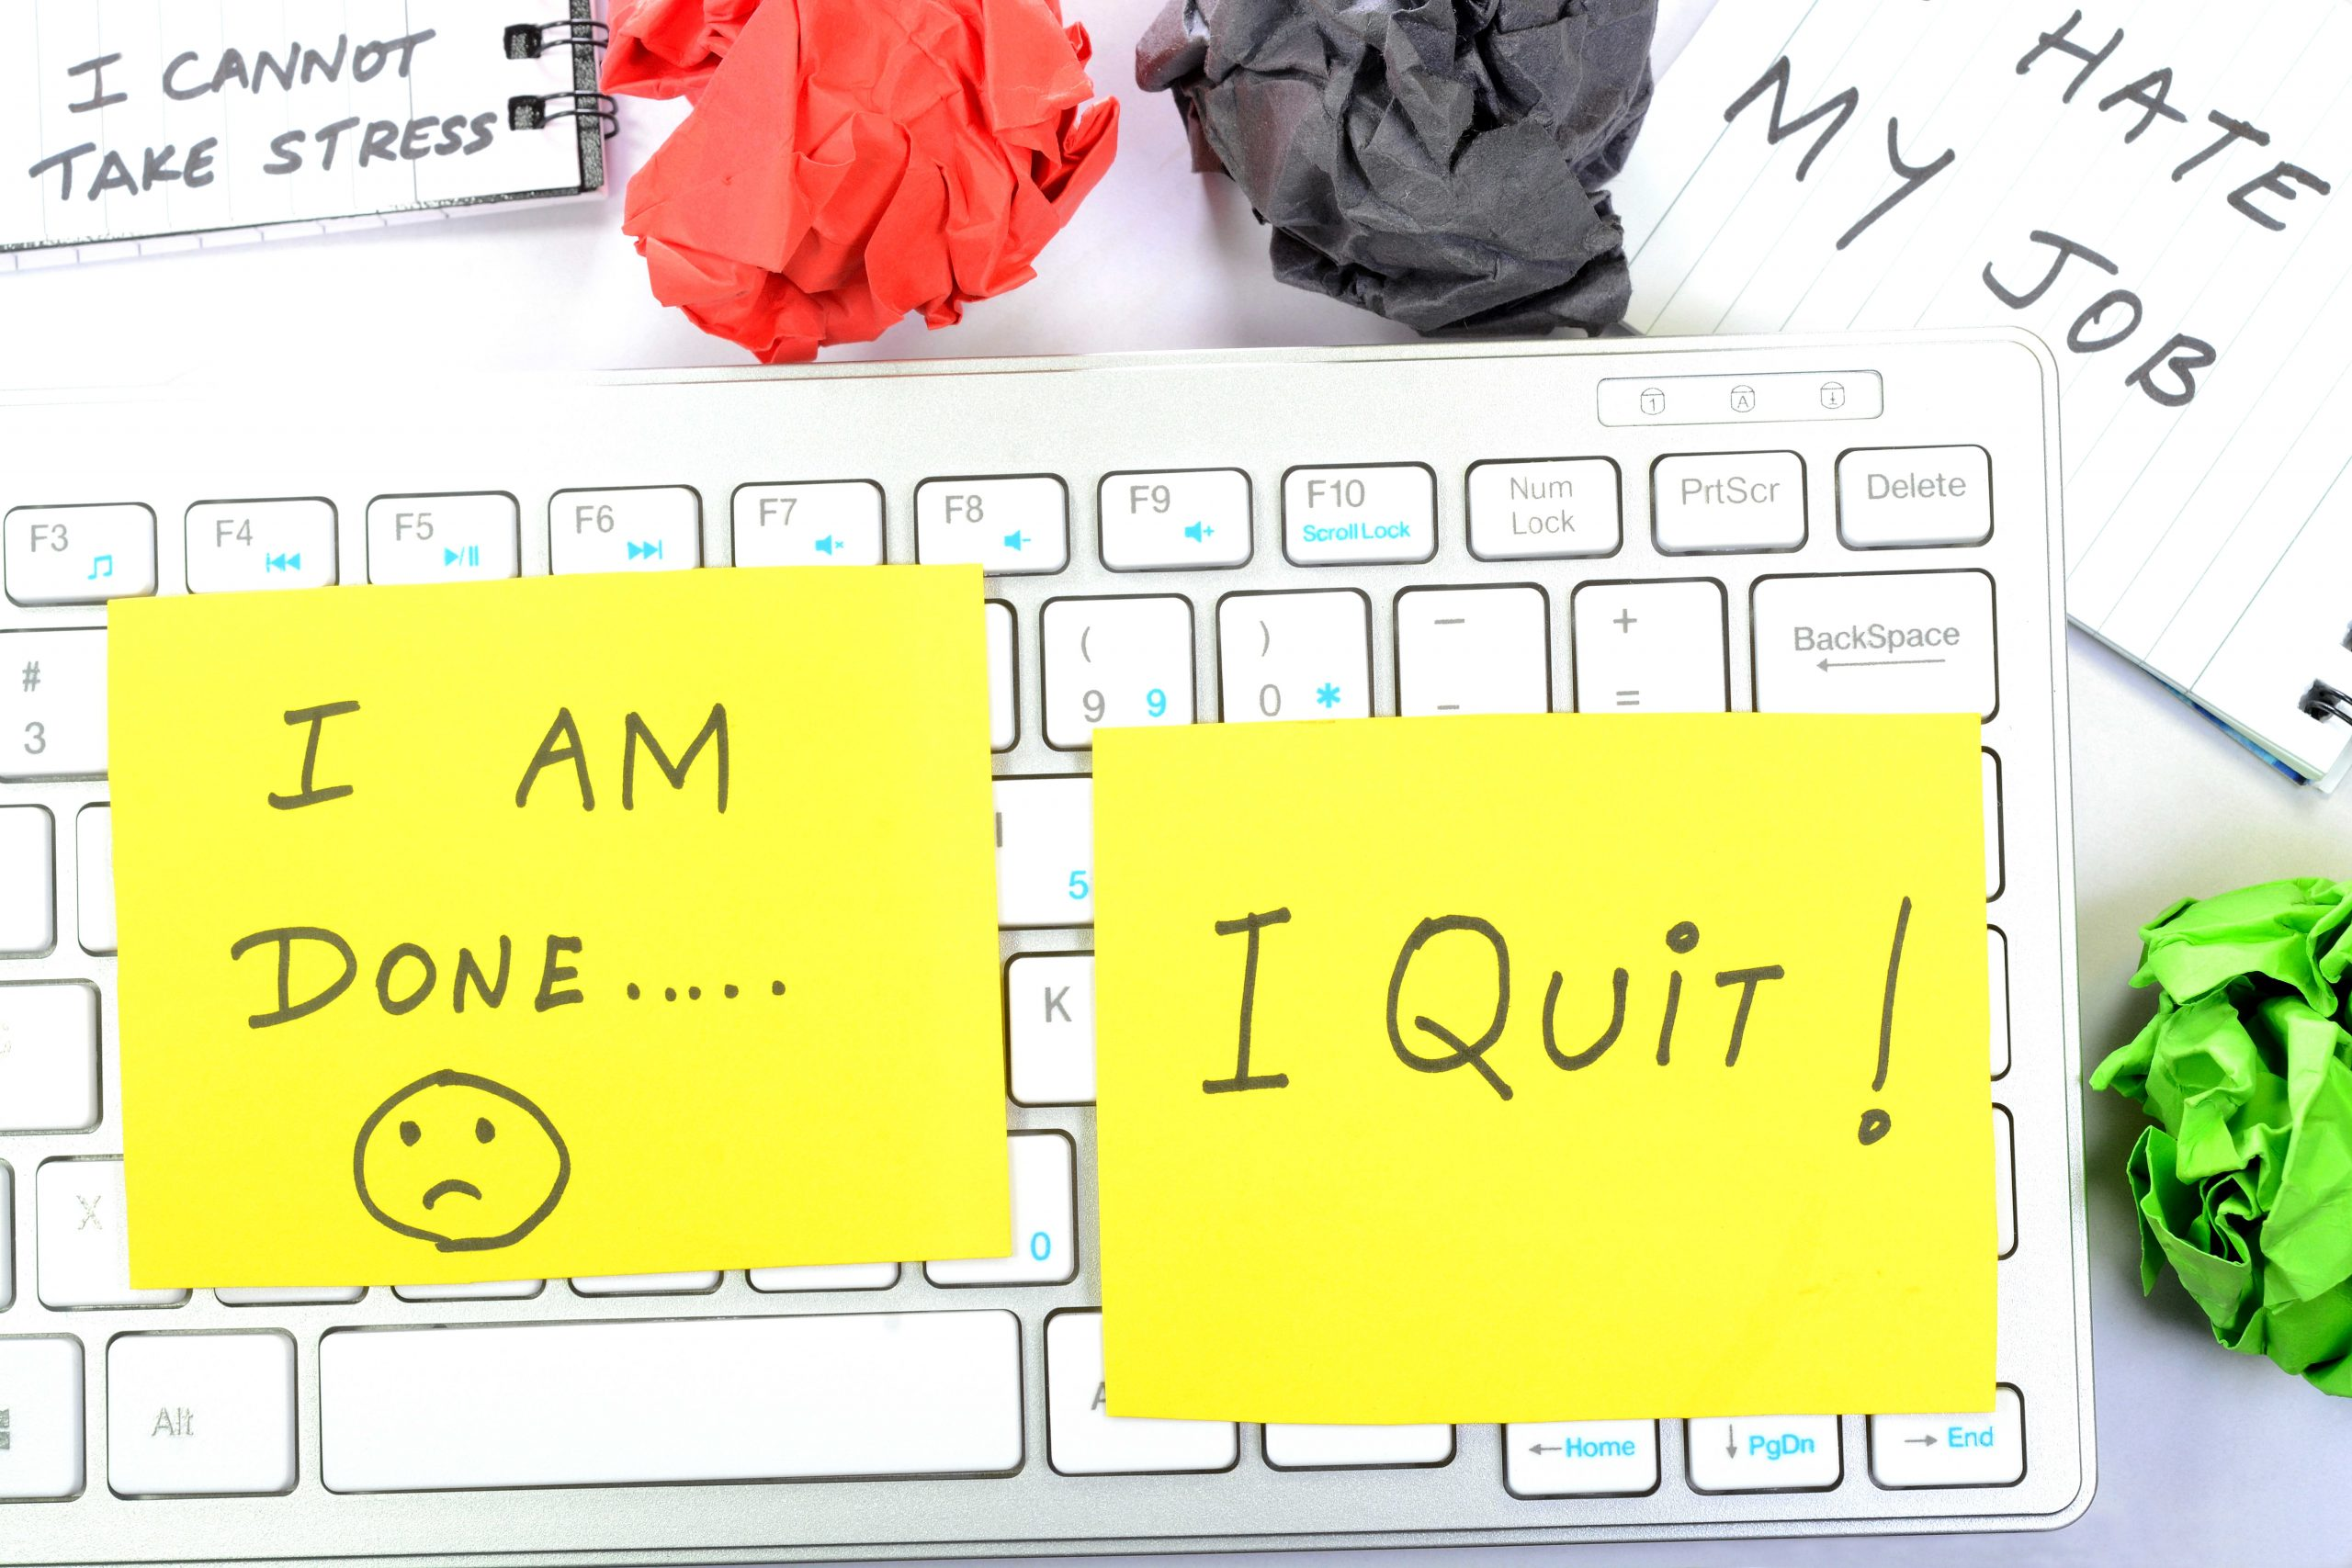 Before you impulsively quit your job, do these four things first